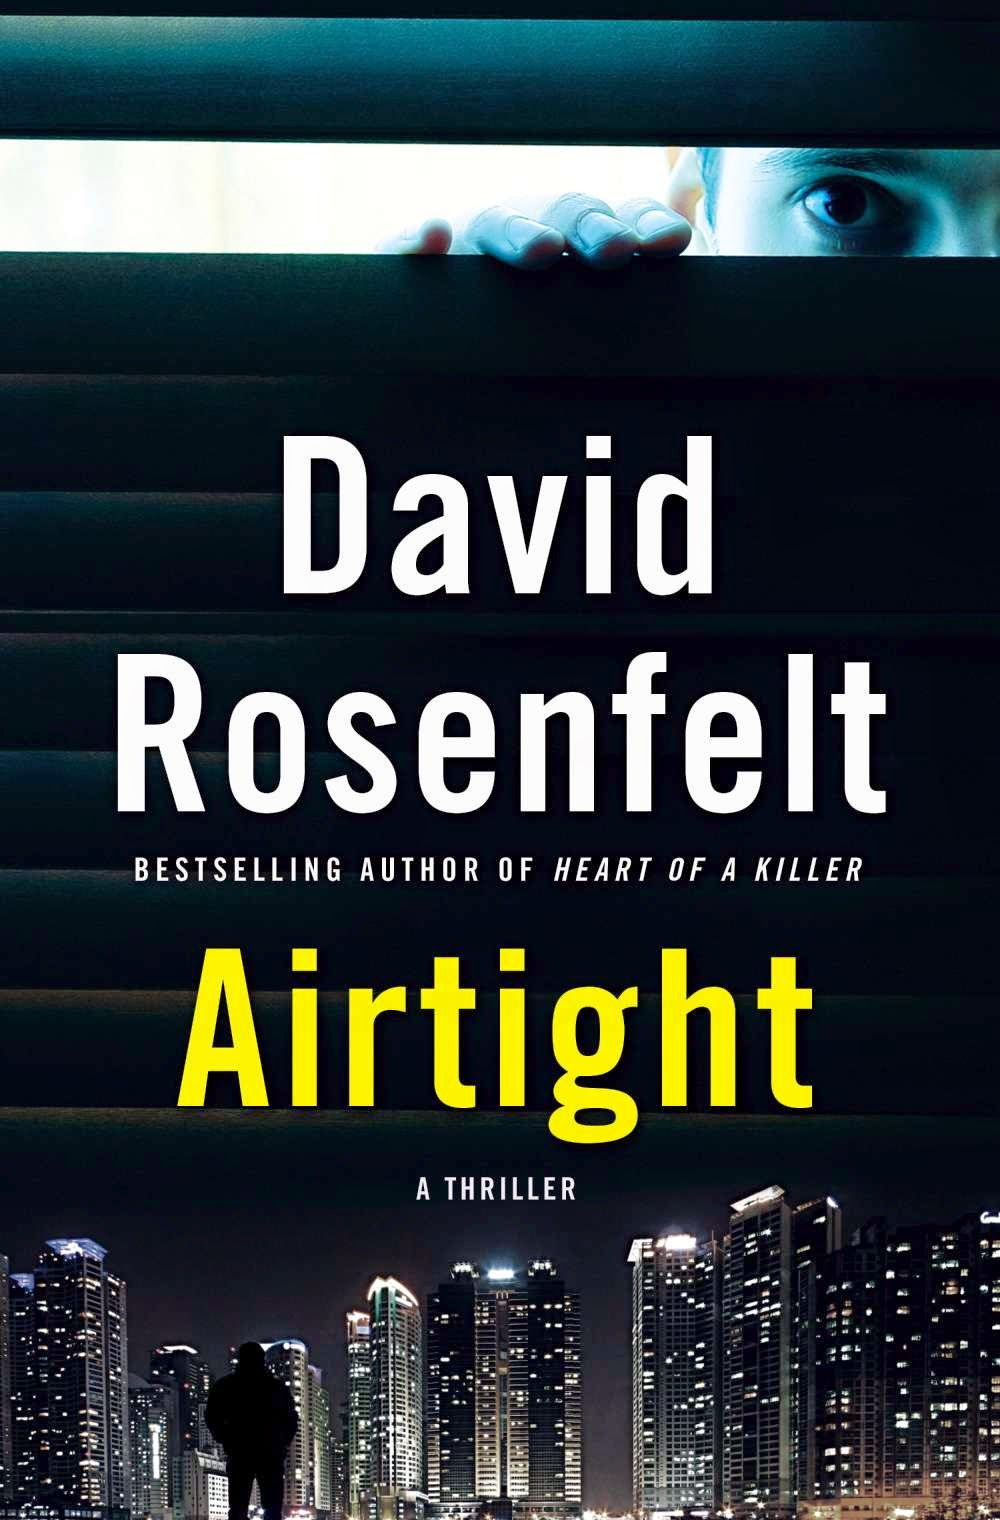 http://discover.halifaxpubliclibraries.ca/?q=title:airtight